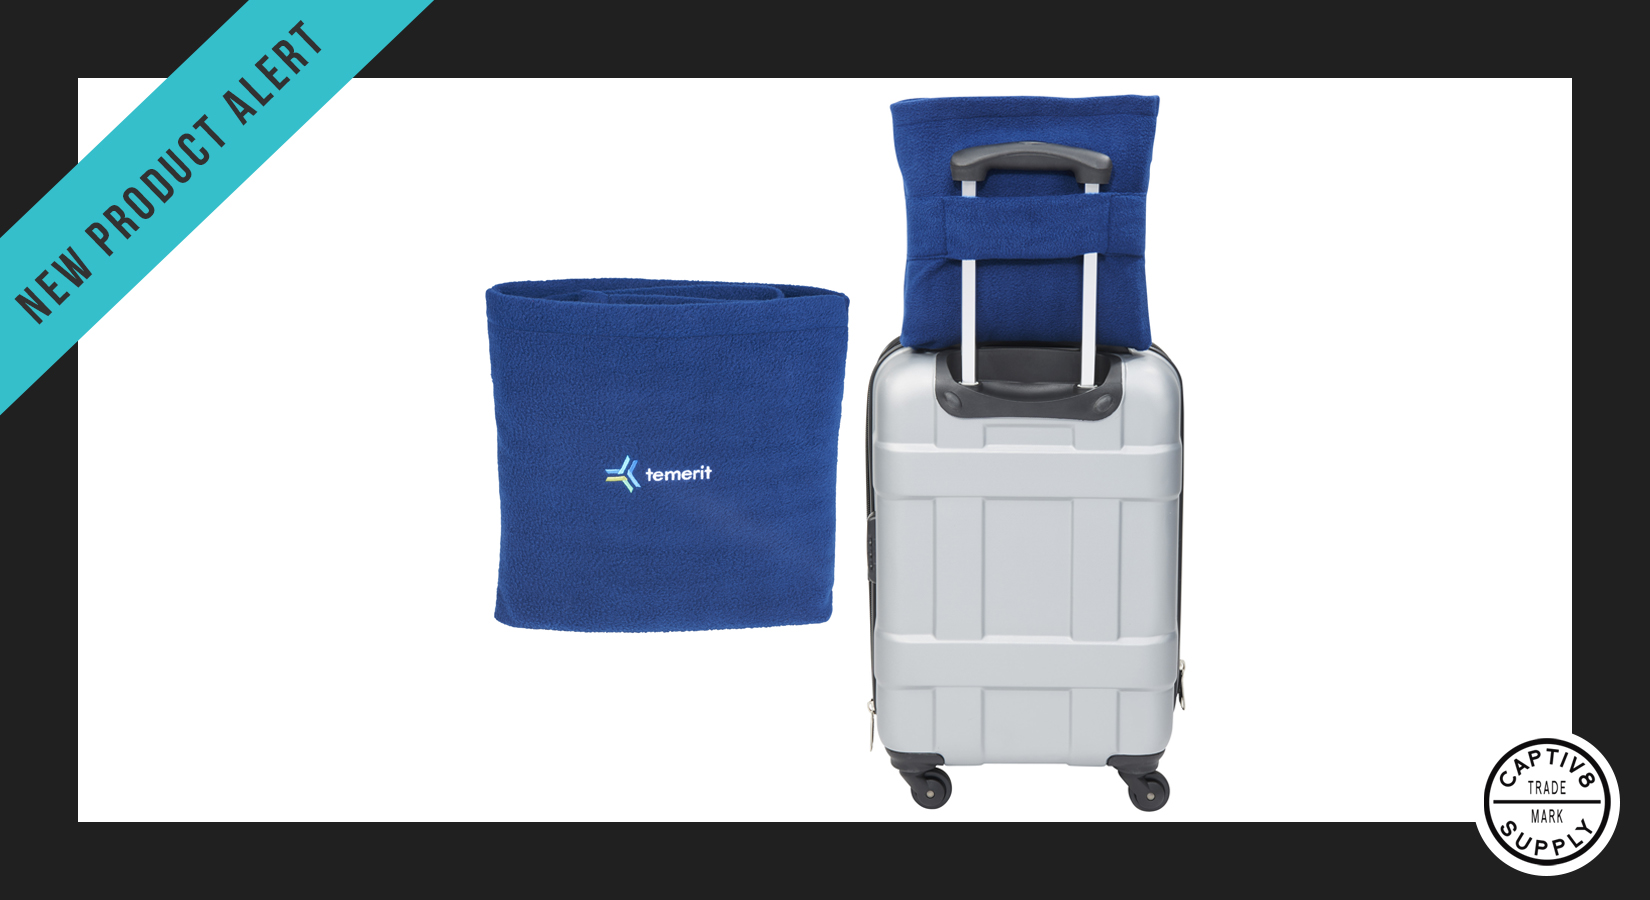 *New Product Alert* – 2-in-1 Carry-On Travel Blanket and Pillow